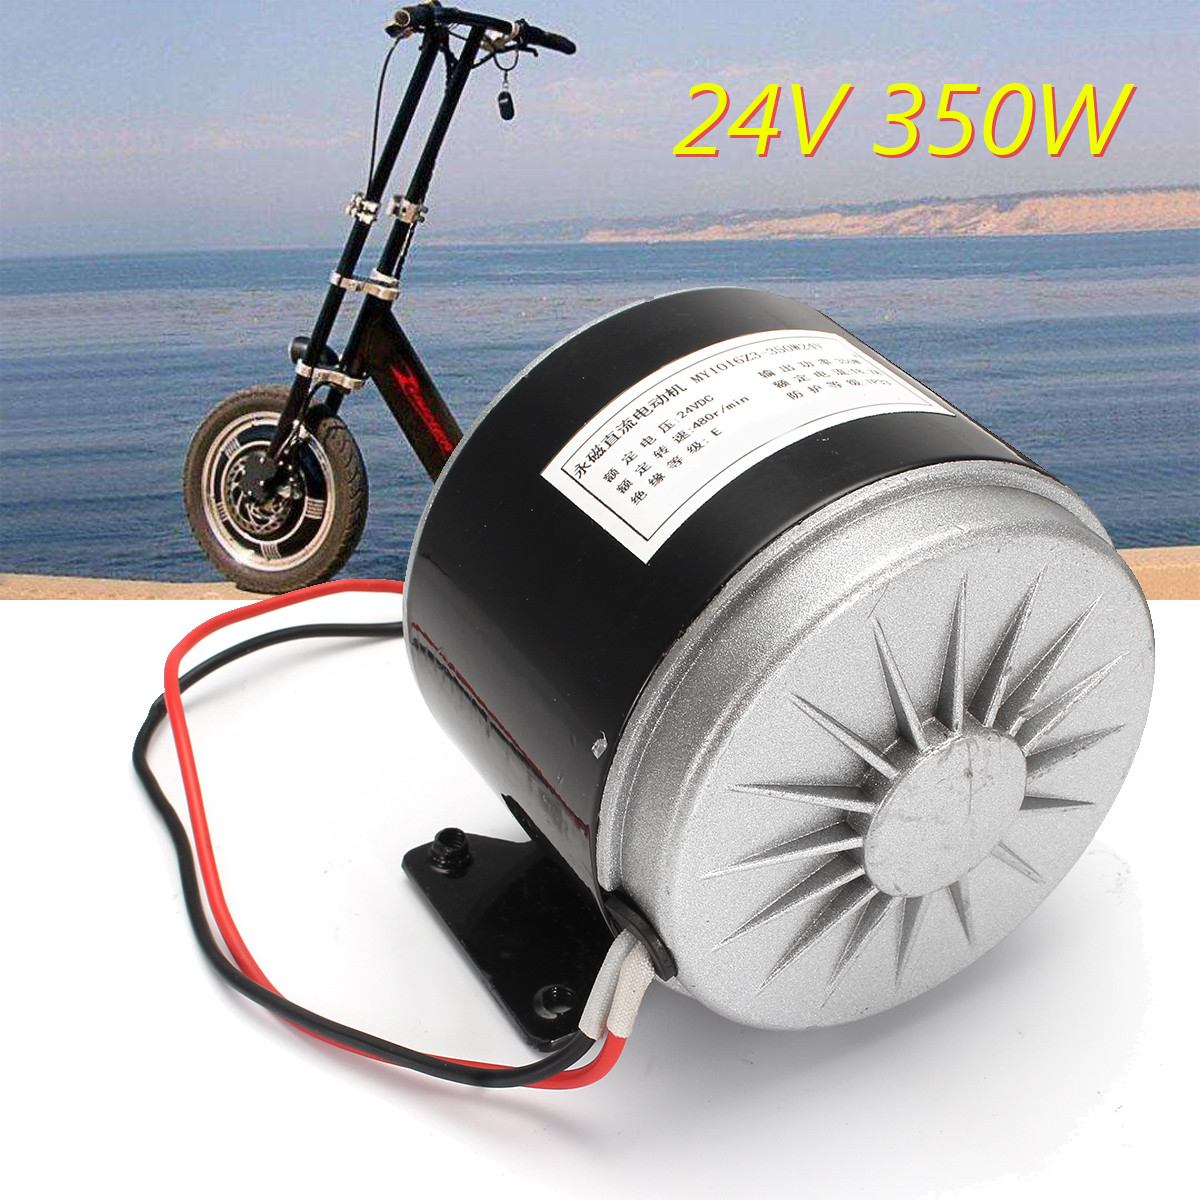 24V DC 350W Electric Scooter Motor Conversion Kit MY1016 Brushed Motor Set For Electric Bike Bicycle ZY1016 Electric Motor